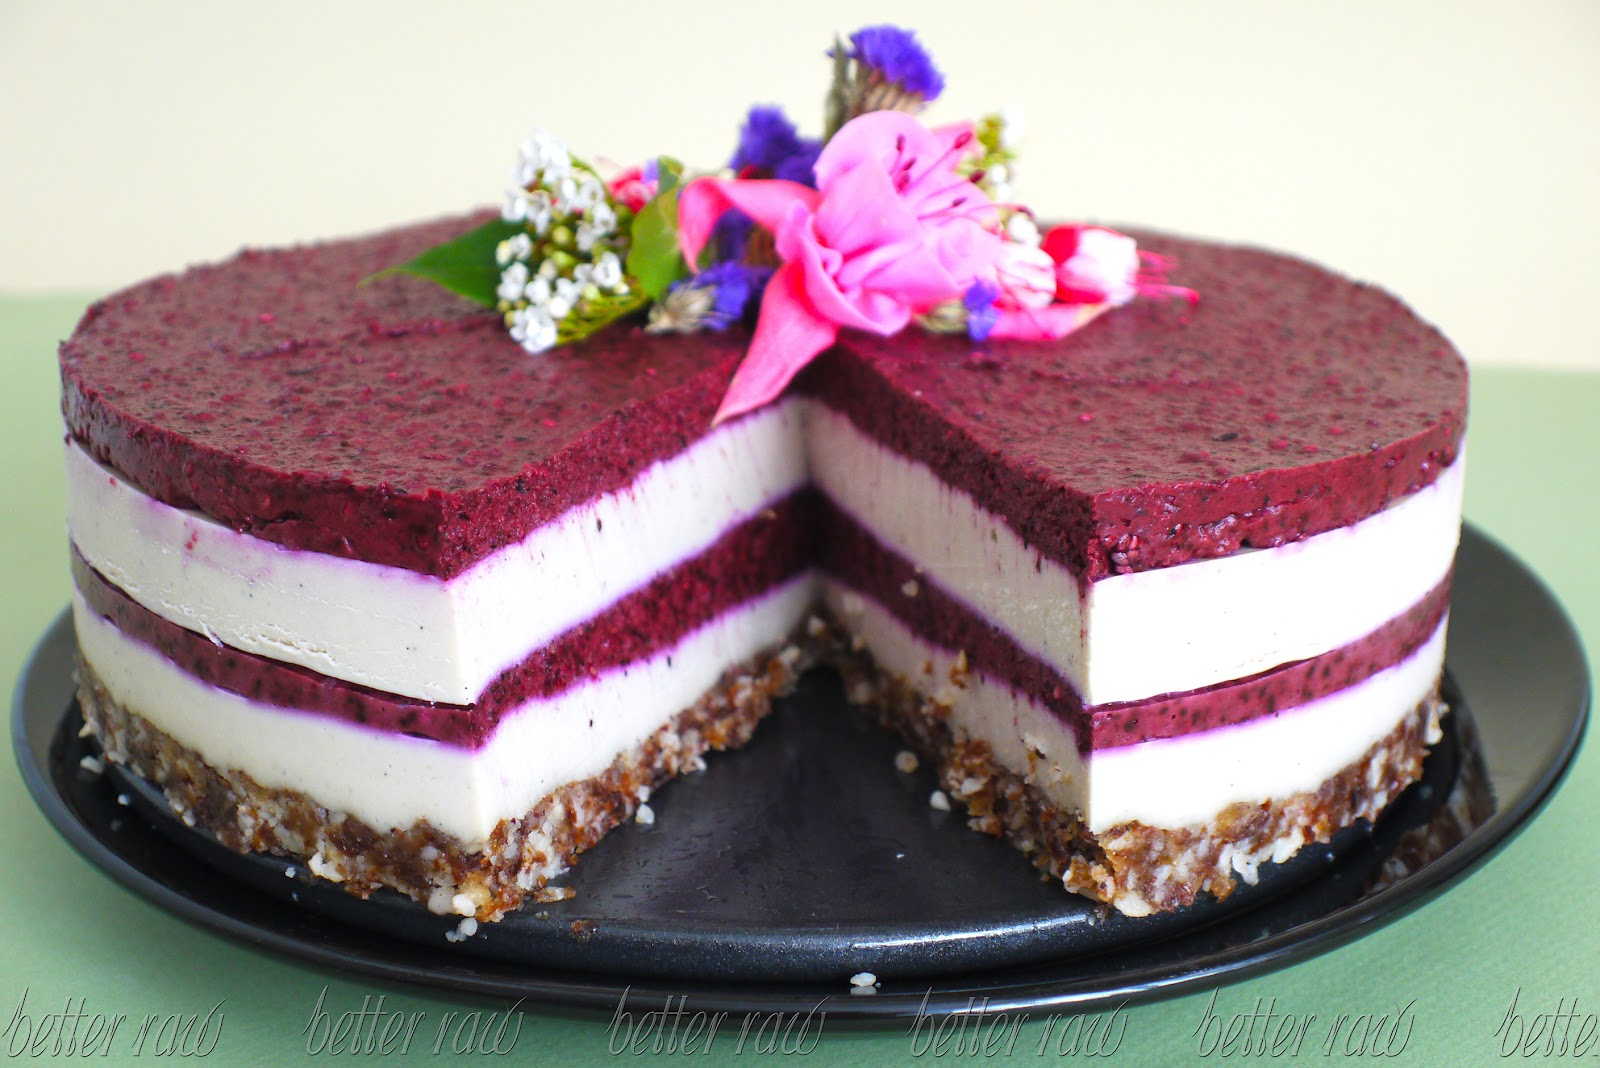 Blueberry And Cream Layer Birthday Cake Better Raw